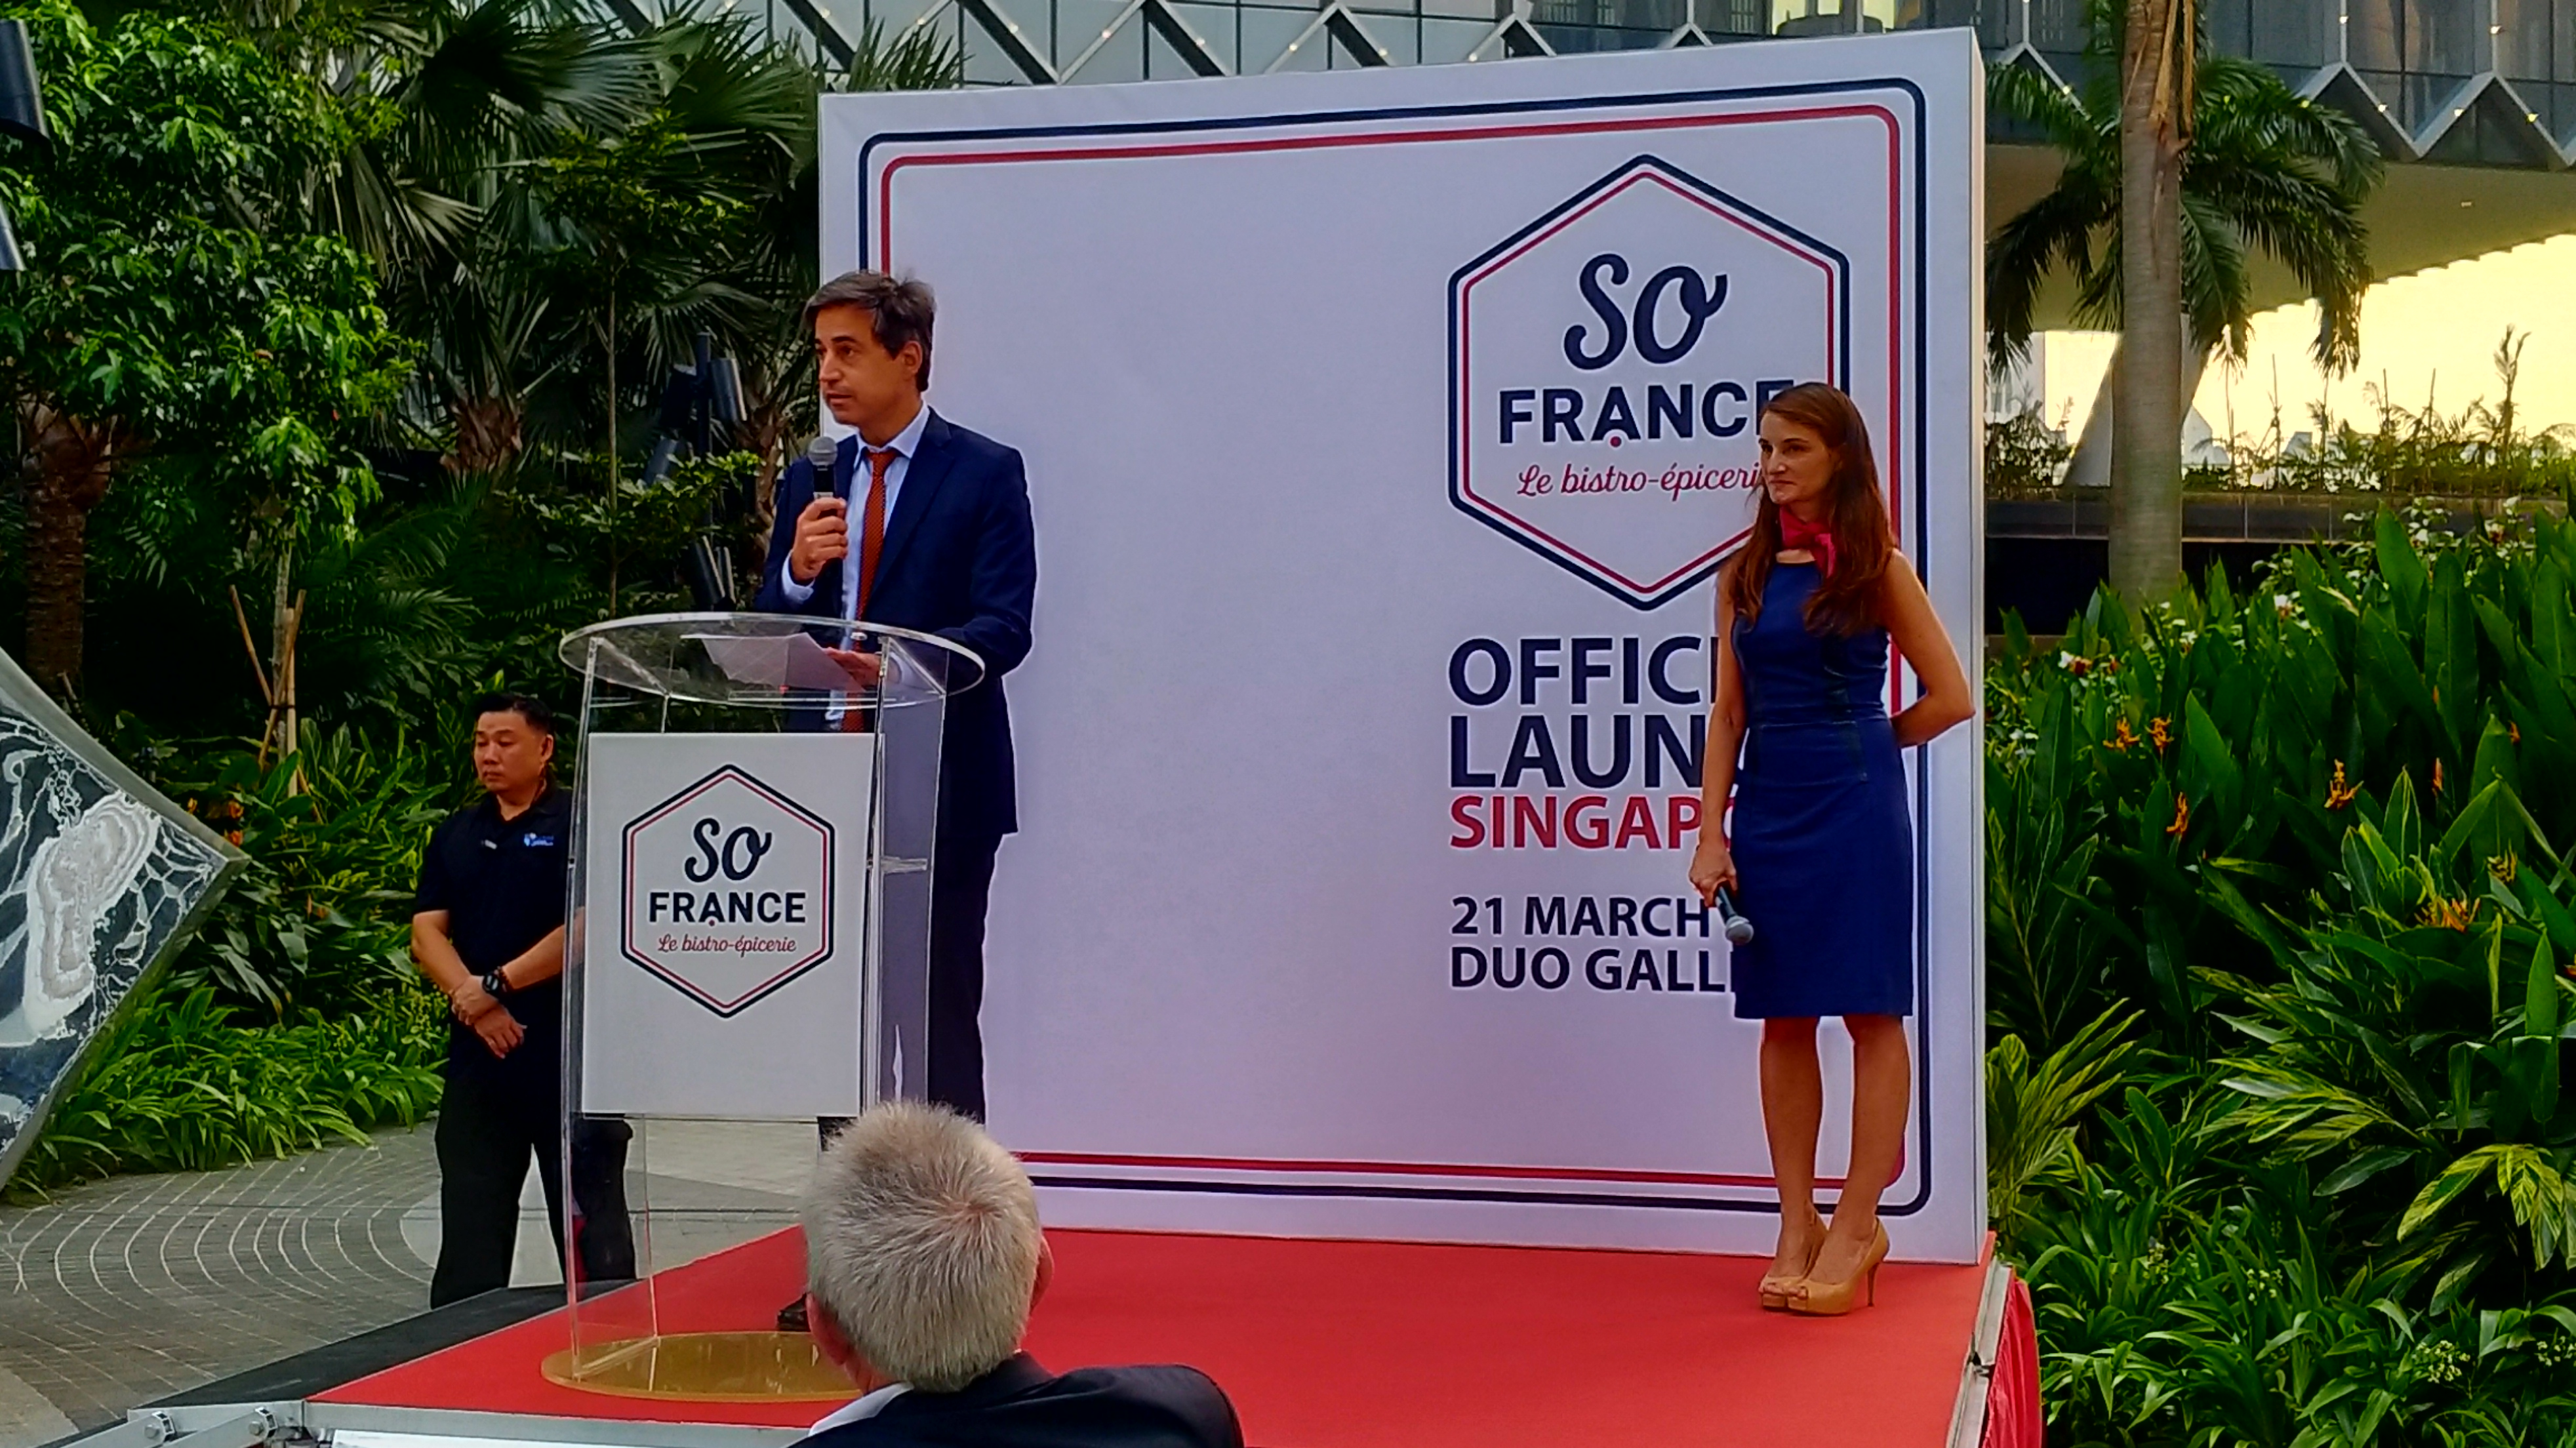 French Ambassador Marc Abensour speaking at the official launch of So France on 21st March